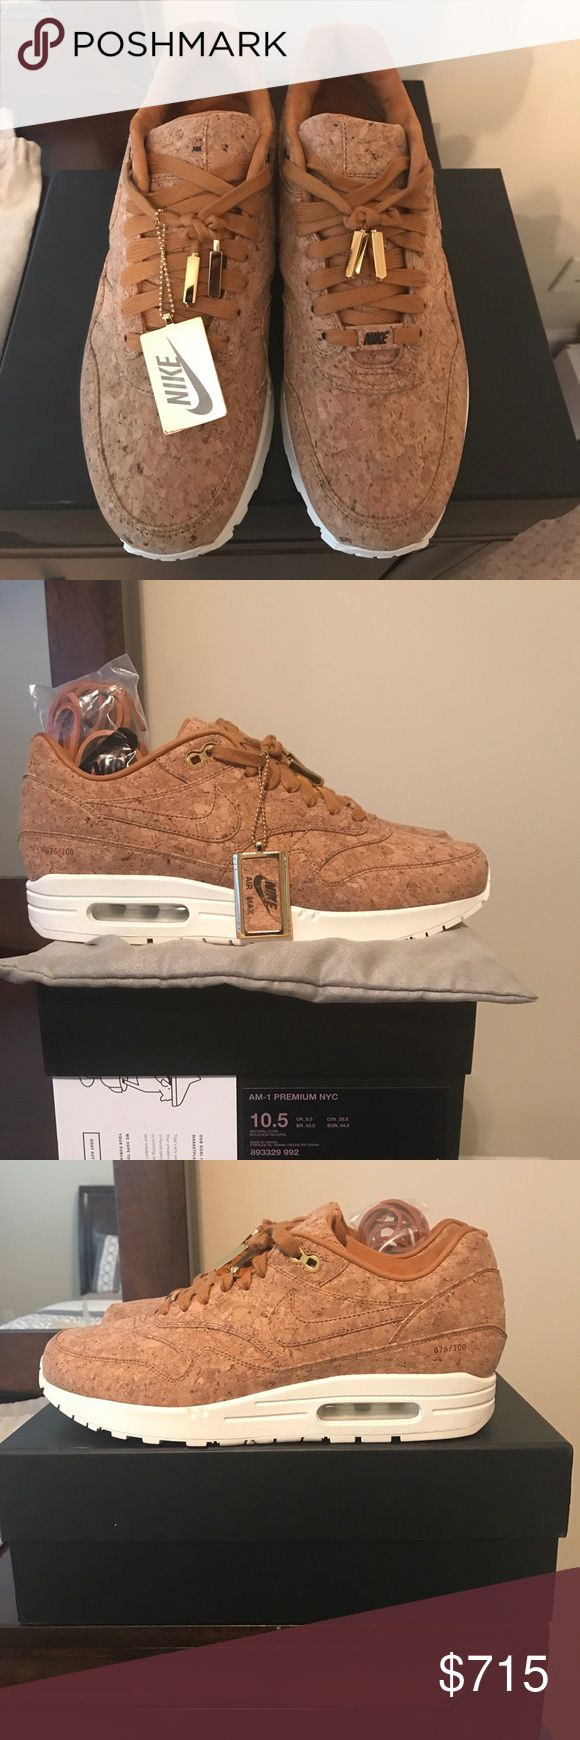 NIKE AIR MAX 1 PRM CORK QS SO HO NY sz 10.5 76/100 Up for auction 💯 authentic New pair of NIKE AIR MAX 1 HYPER PRM CORK QS SO HO NYC Sz 10.5 Men's 76/100 Limited. Shoes were tried on for sizing was to snug to keep. I suggest those who normally wear a size 10 in AM1s this 10.5 will be perfect. Shoe were purchased off the sneaker GOAT app. Also included are 2 dust bags 4 gold numbered 76/100 lace tips, extra leather laces, and a gold/Cork Nike key chain. These are extremely limited and only…